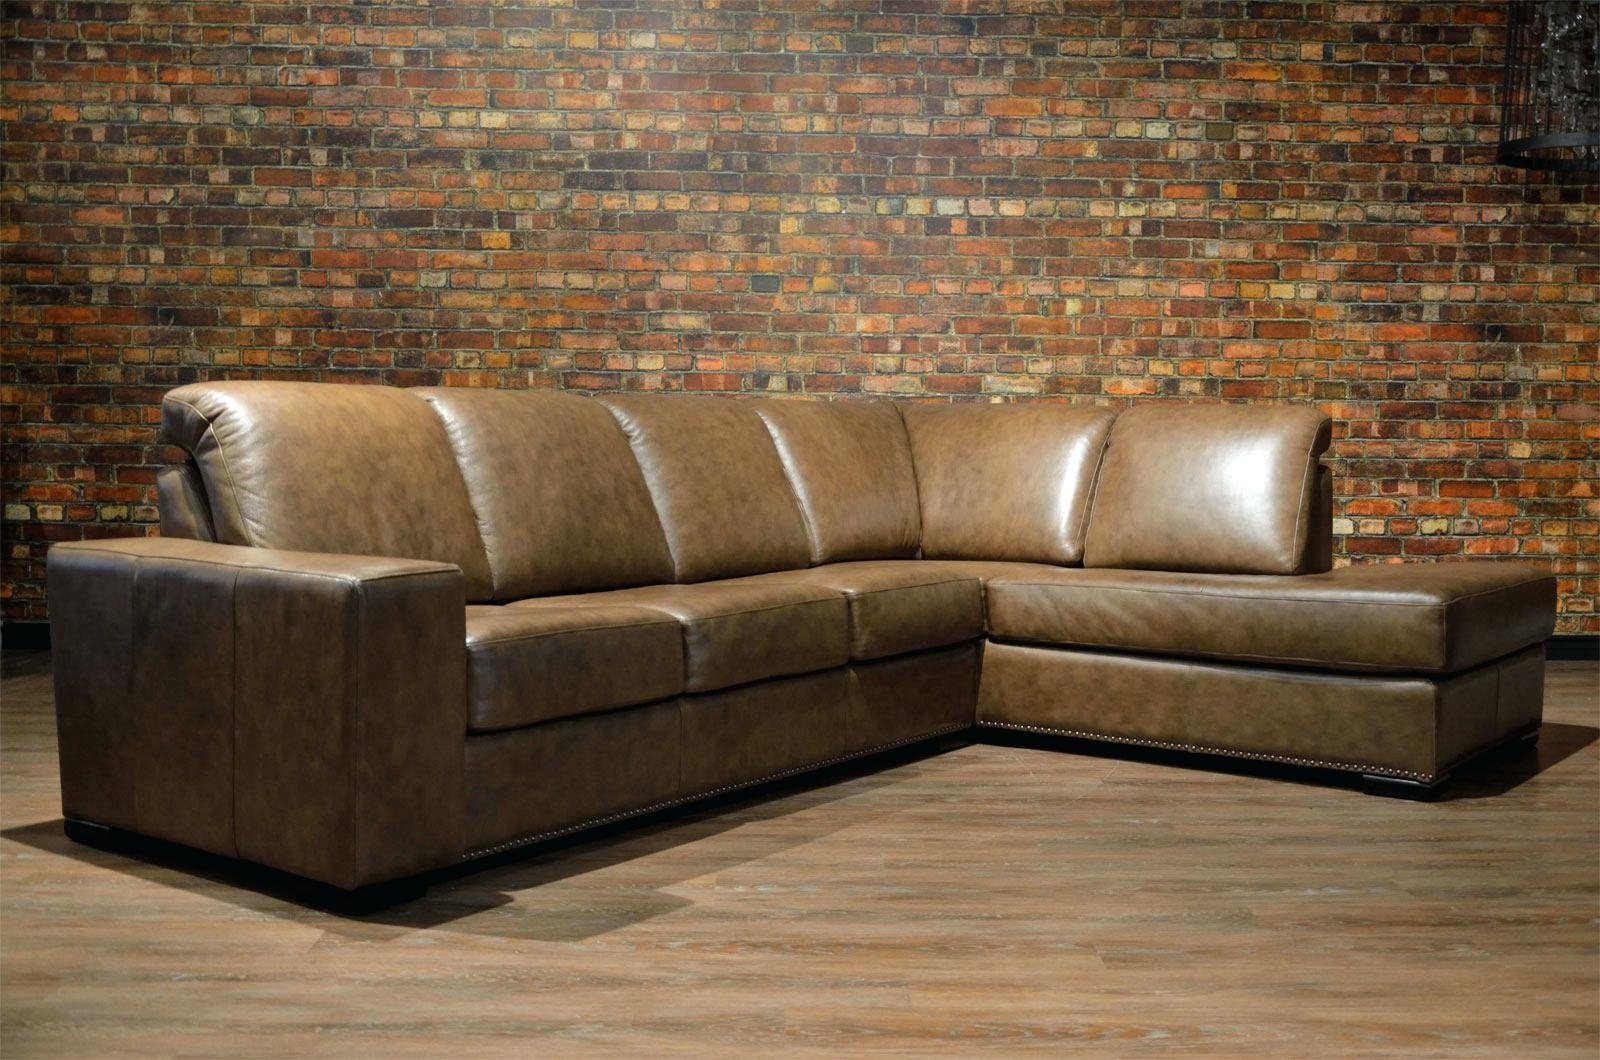 Used Leather Couches For Sale Sectional Canada Cheap Cape Town Couch Within Sectional Sofas At Bc Canada (Image 10 of 10)